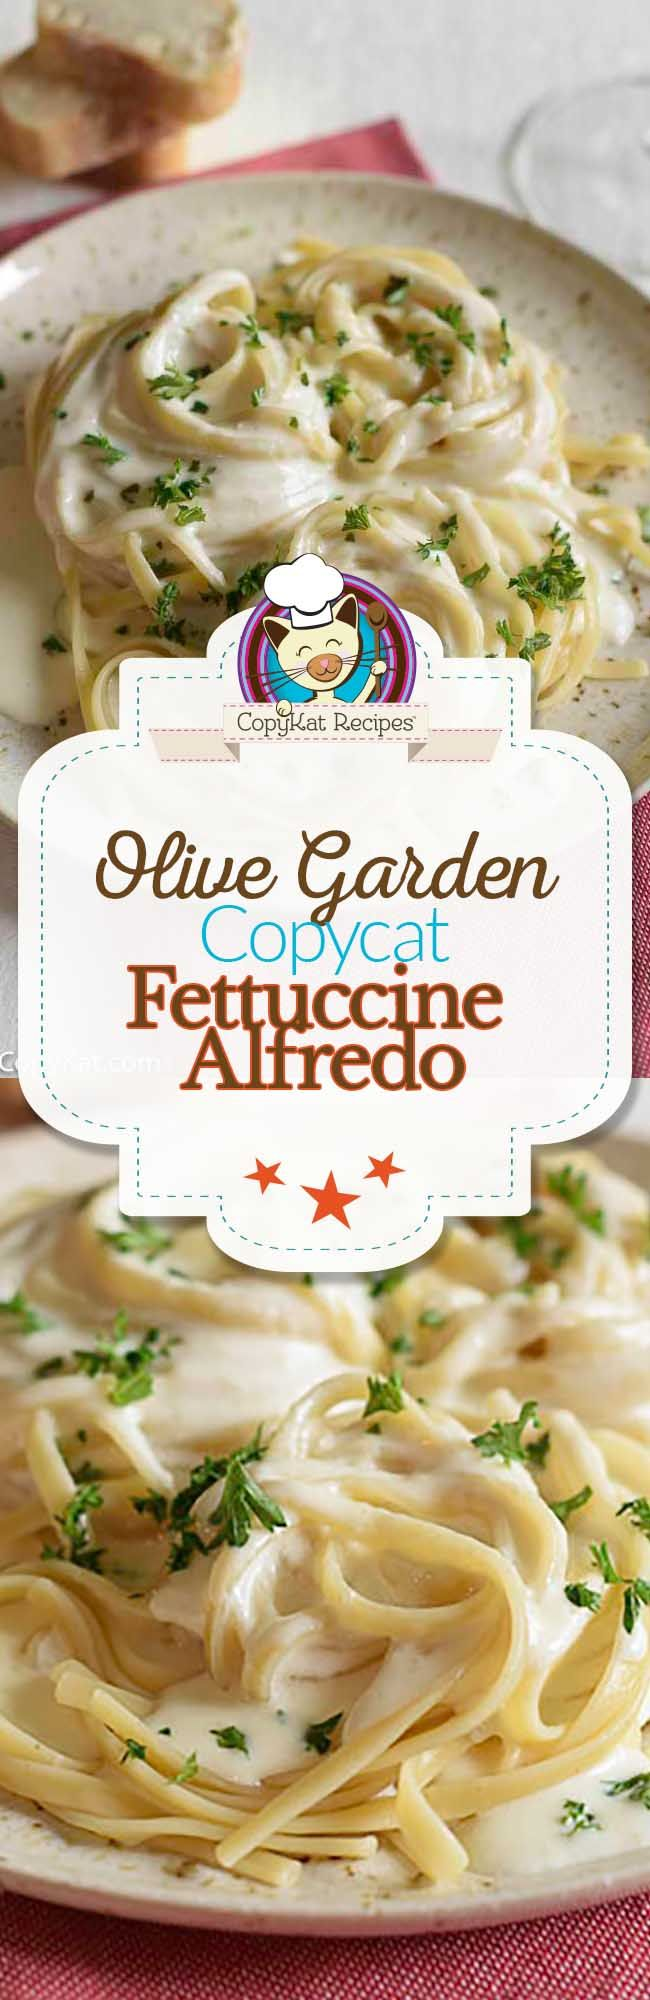 Olive garden alfredo sauce recipe recipes to cook - Olive garden alfredo recipe copycat ...